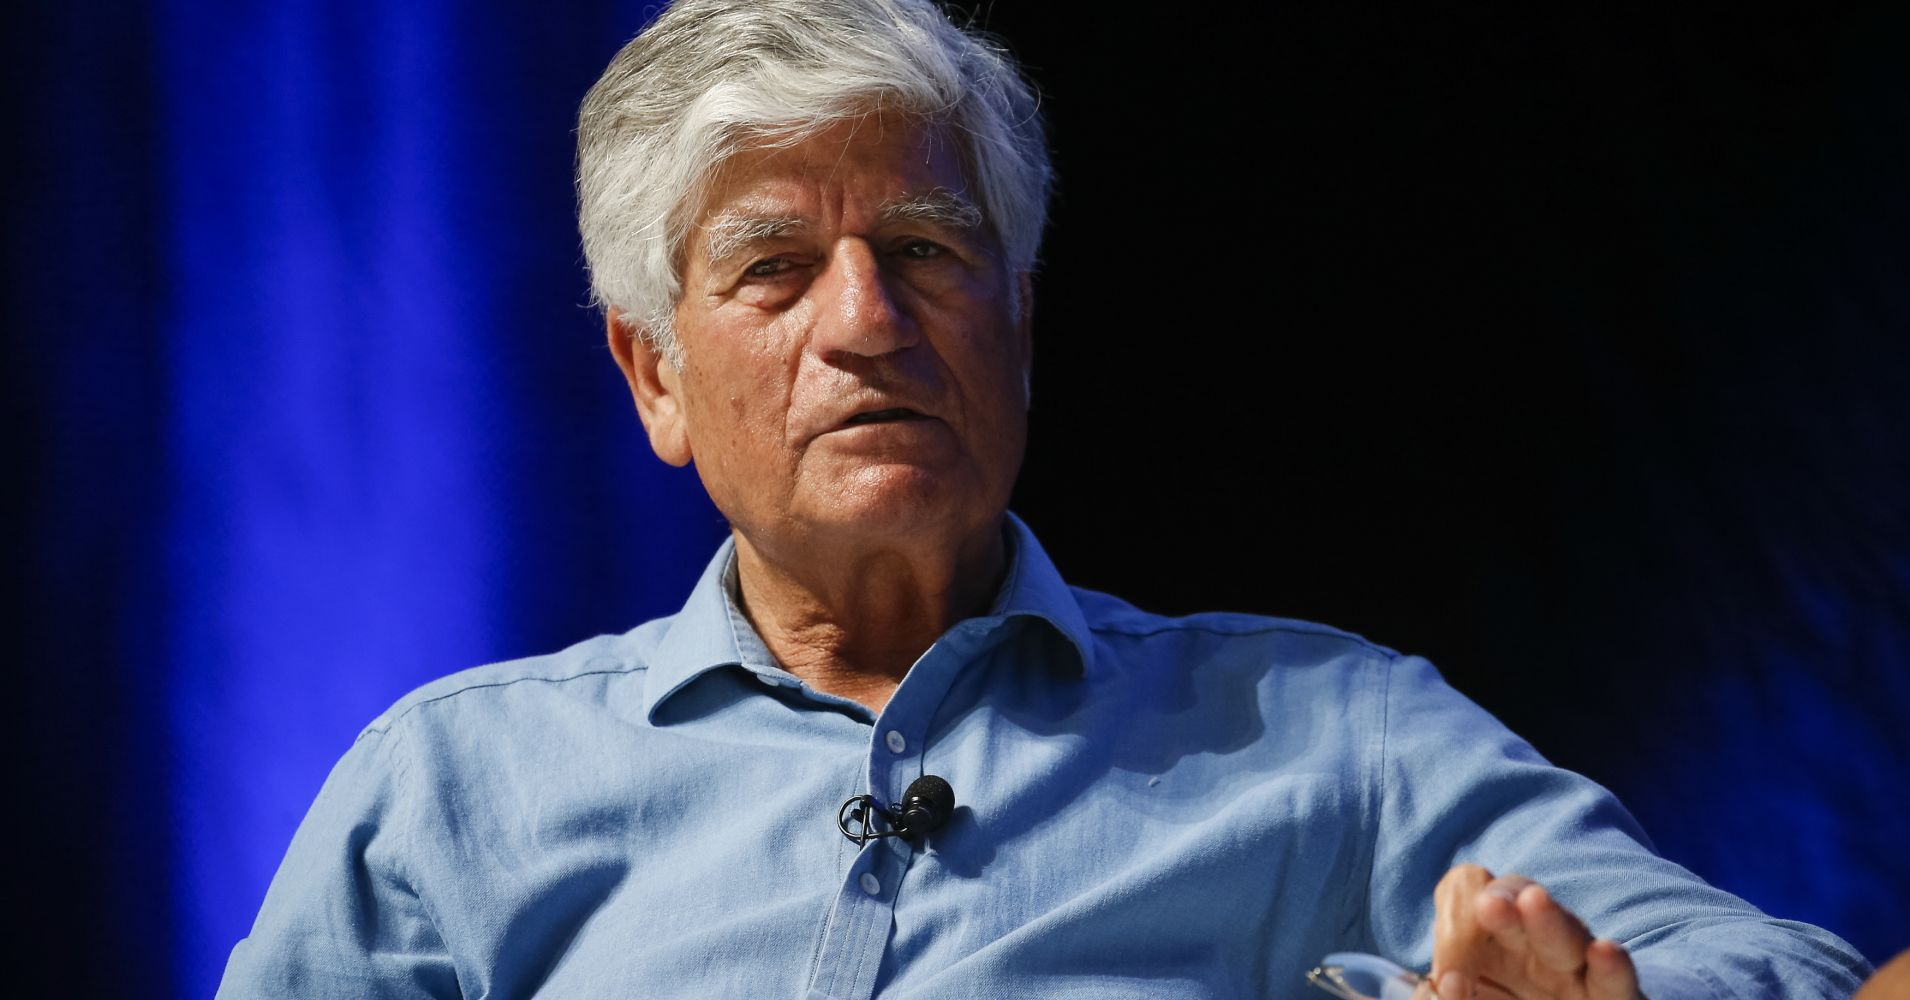 Chairman of Publicis Groupe Maurice Levy speaks during the 'Can Creativity Change the World?' seminar during the Cannes Lions Festival 2017